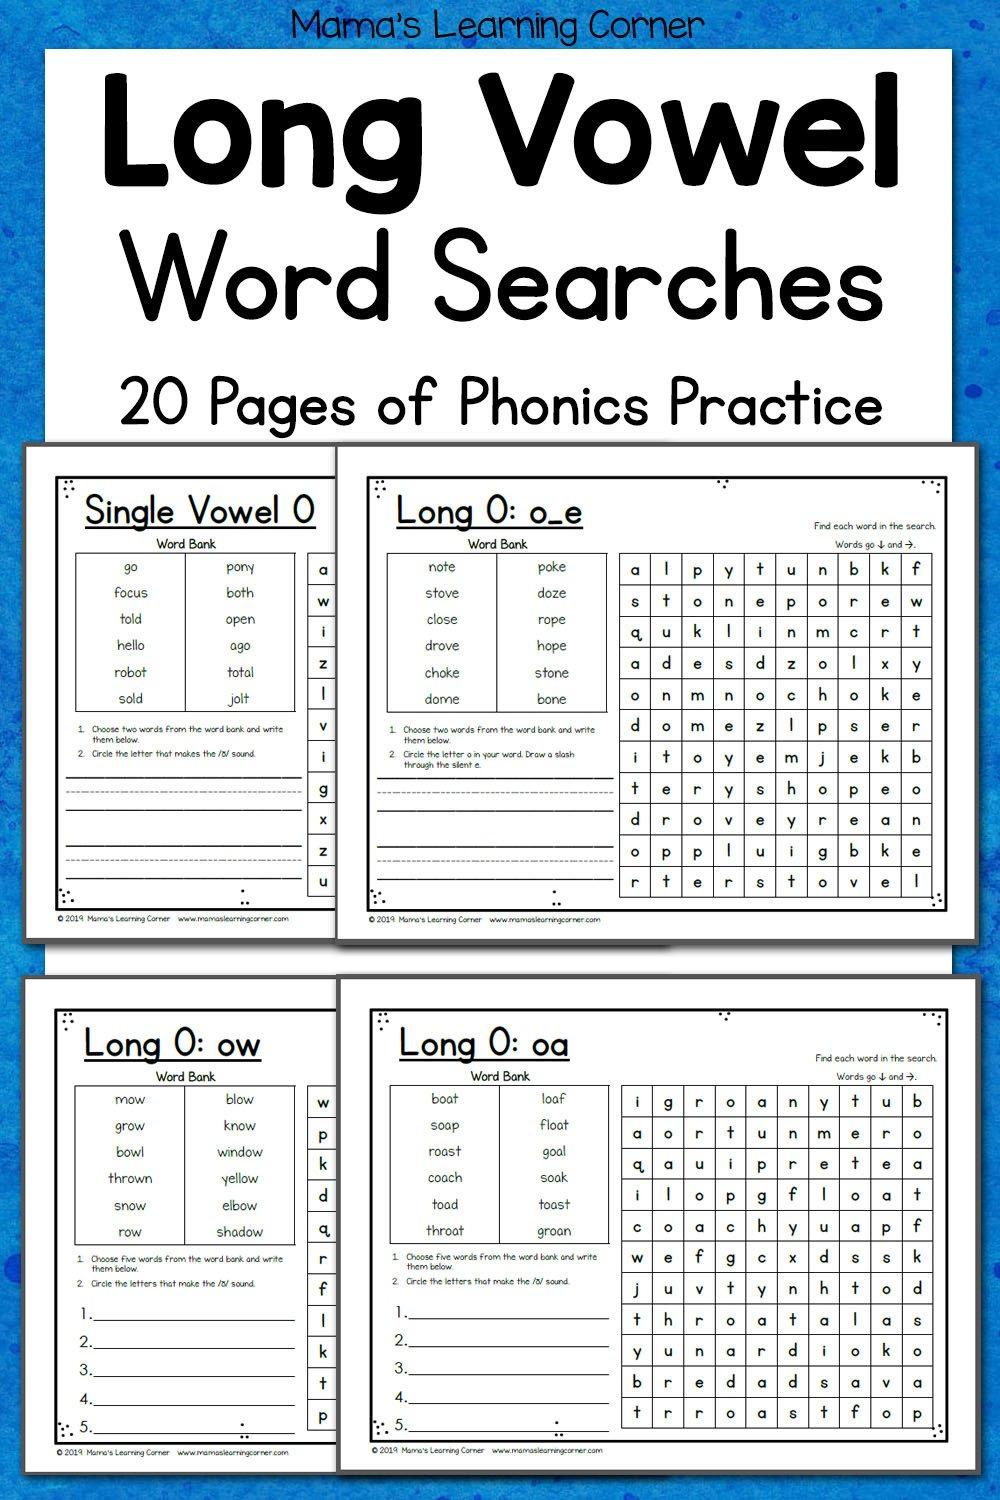 Long Vowels Worksheets Kindergarten Long Vowel Word Search Puzzles Mamas Learning Corner